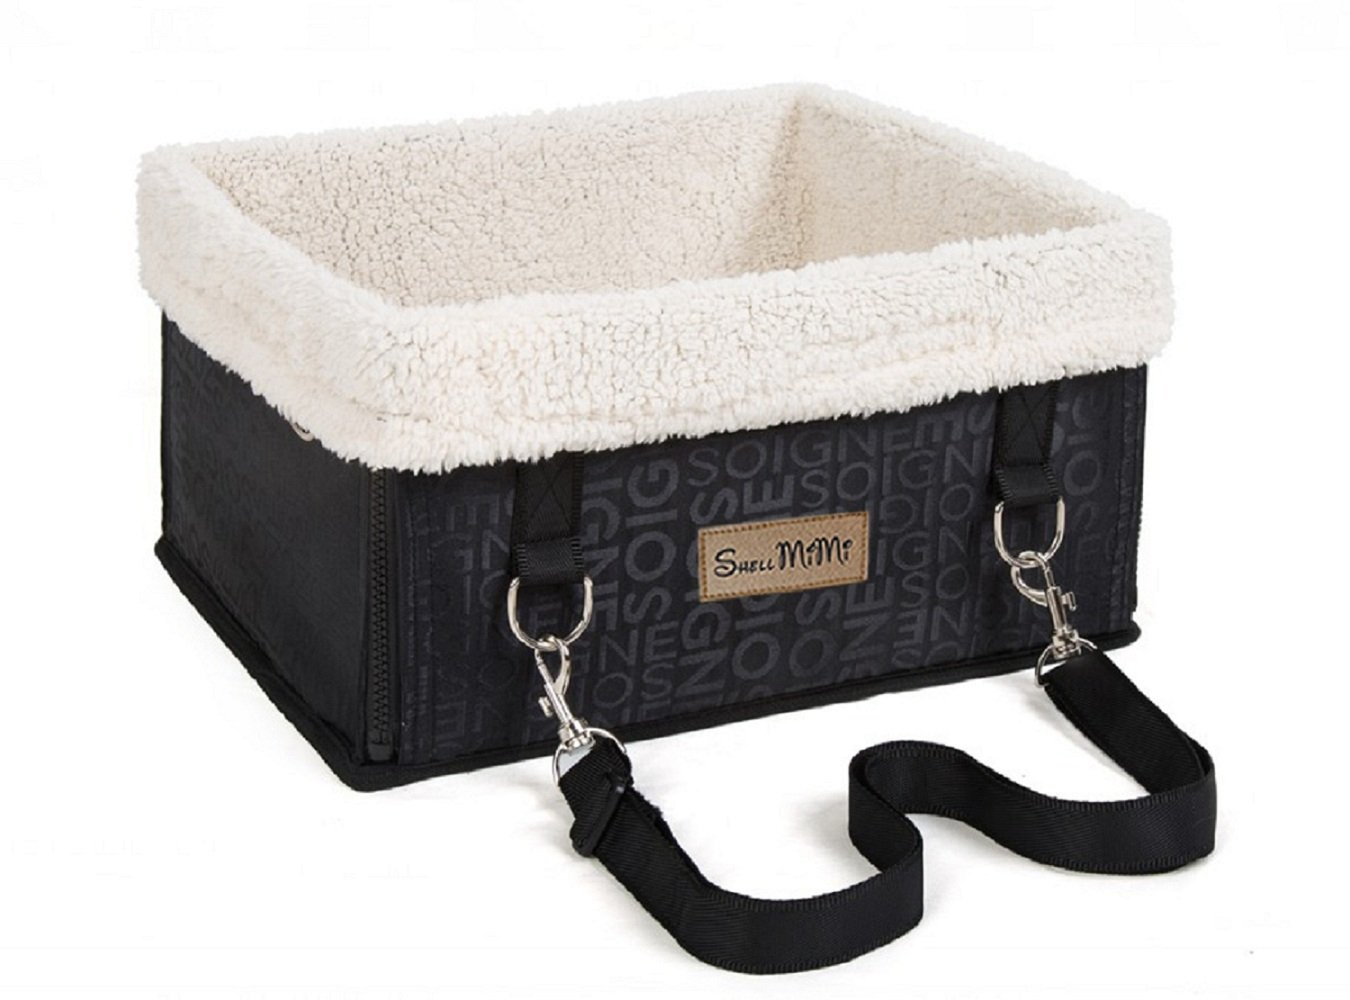 SHELLMIMI Pet Booster Car Seat for Dogs Under 12lbs-Just for Small Dog (Black), with Harness